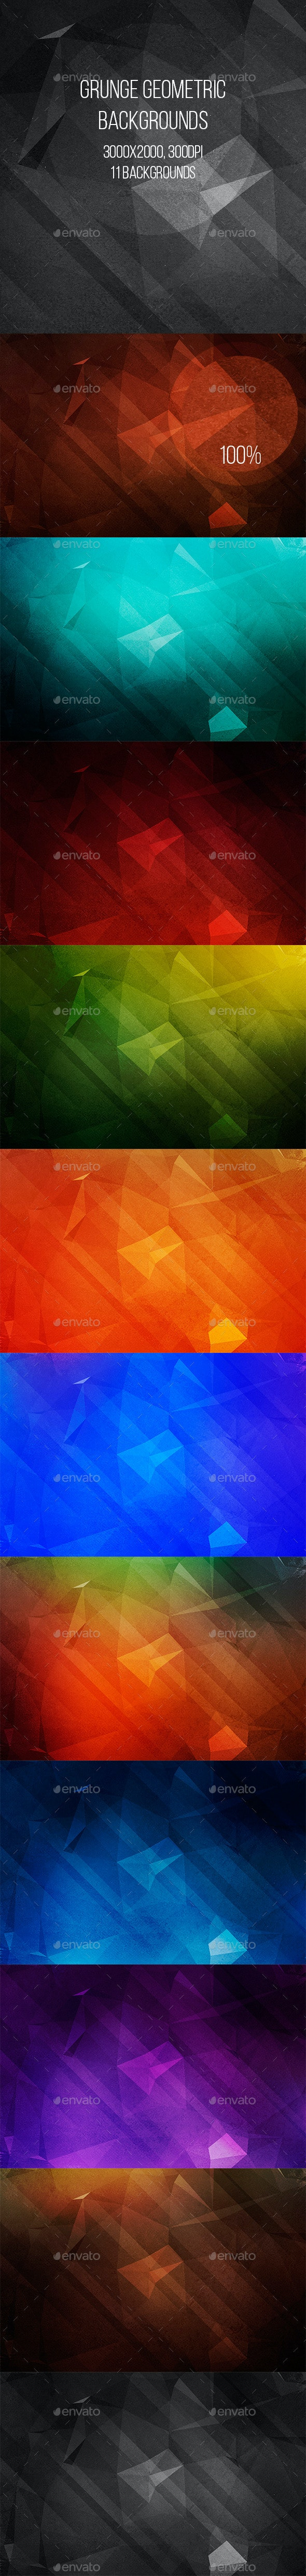 Grunge Geometric Backgrounds - Abstract Backgrounds